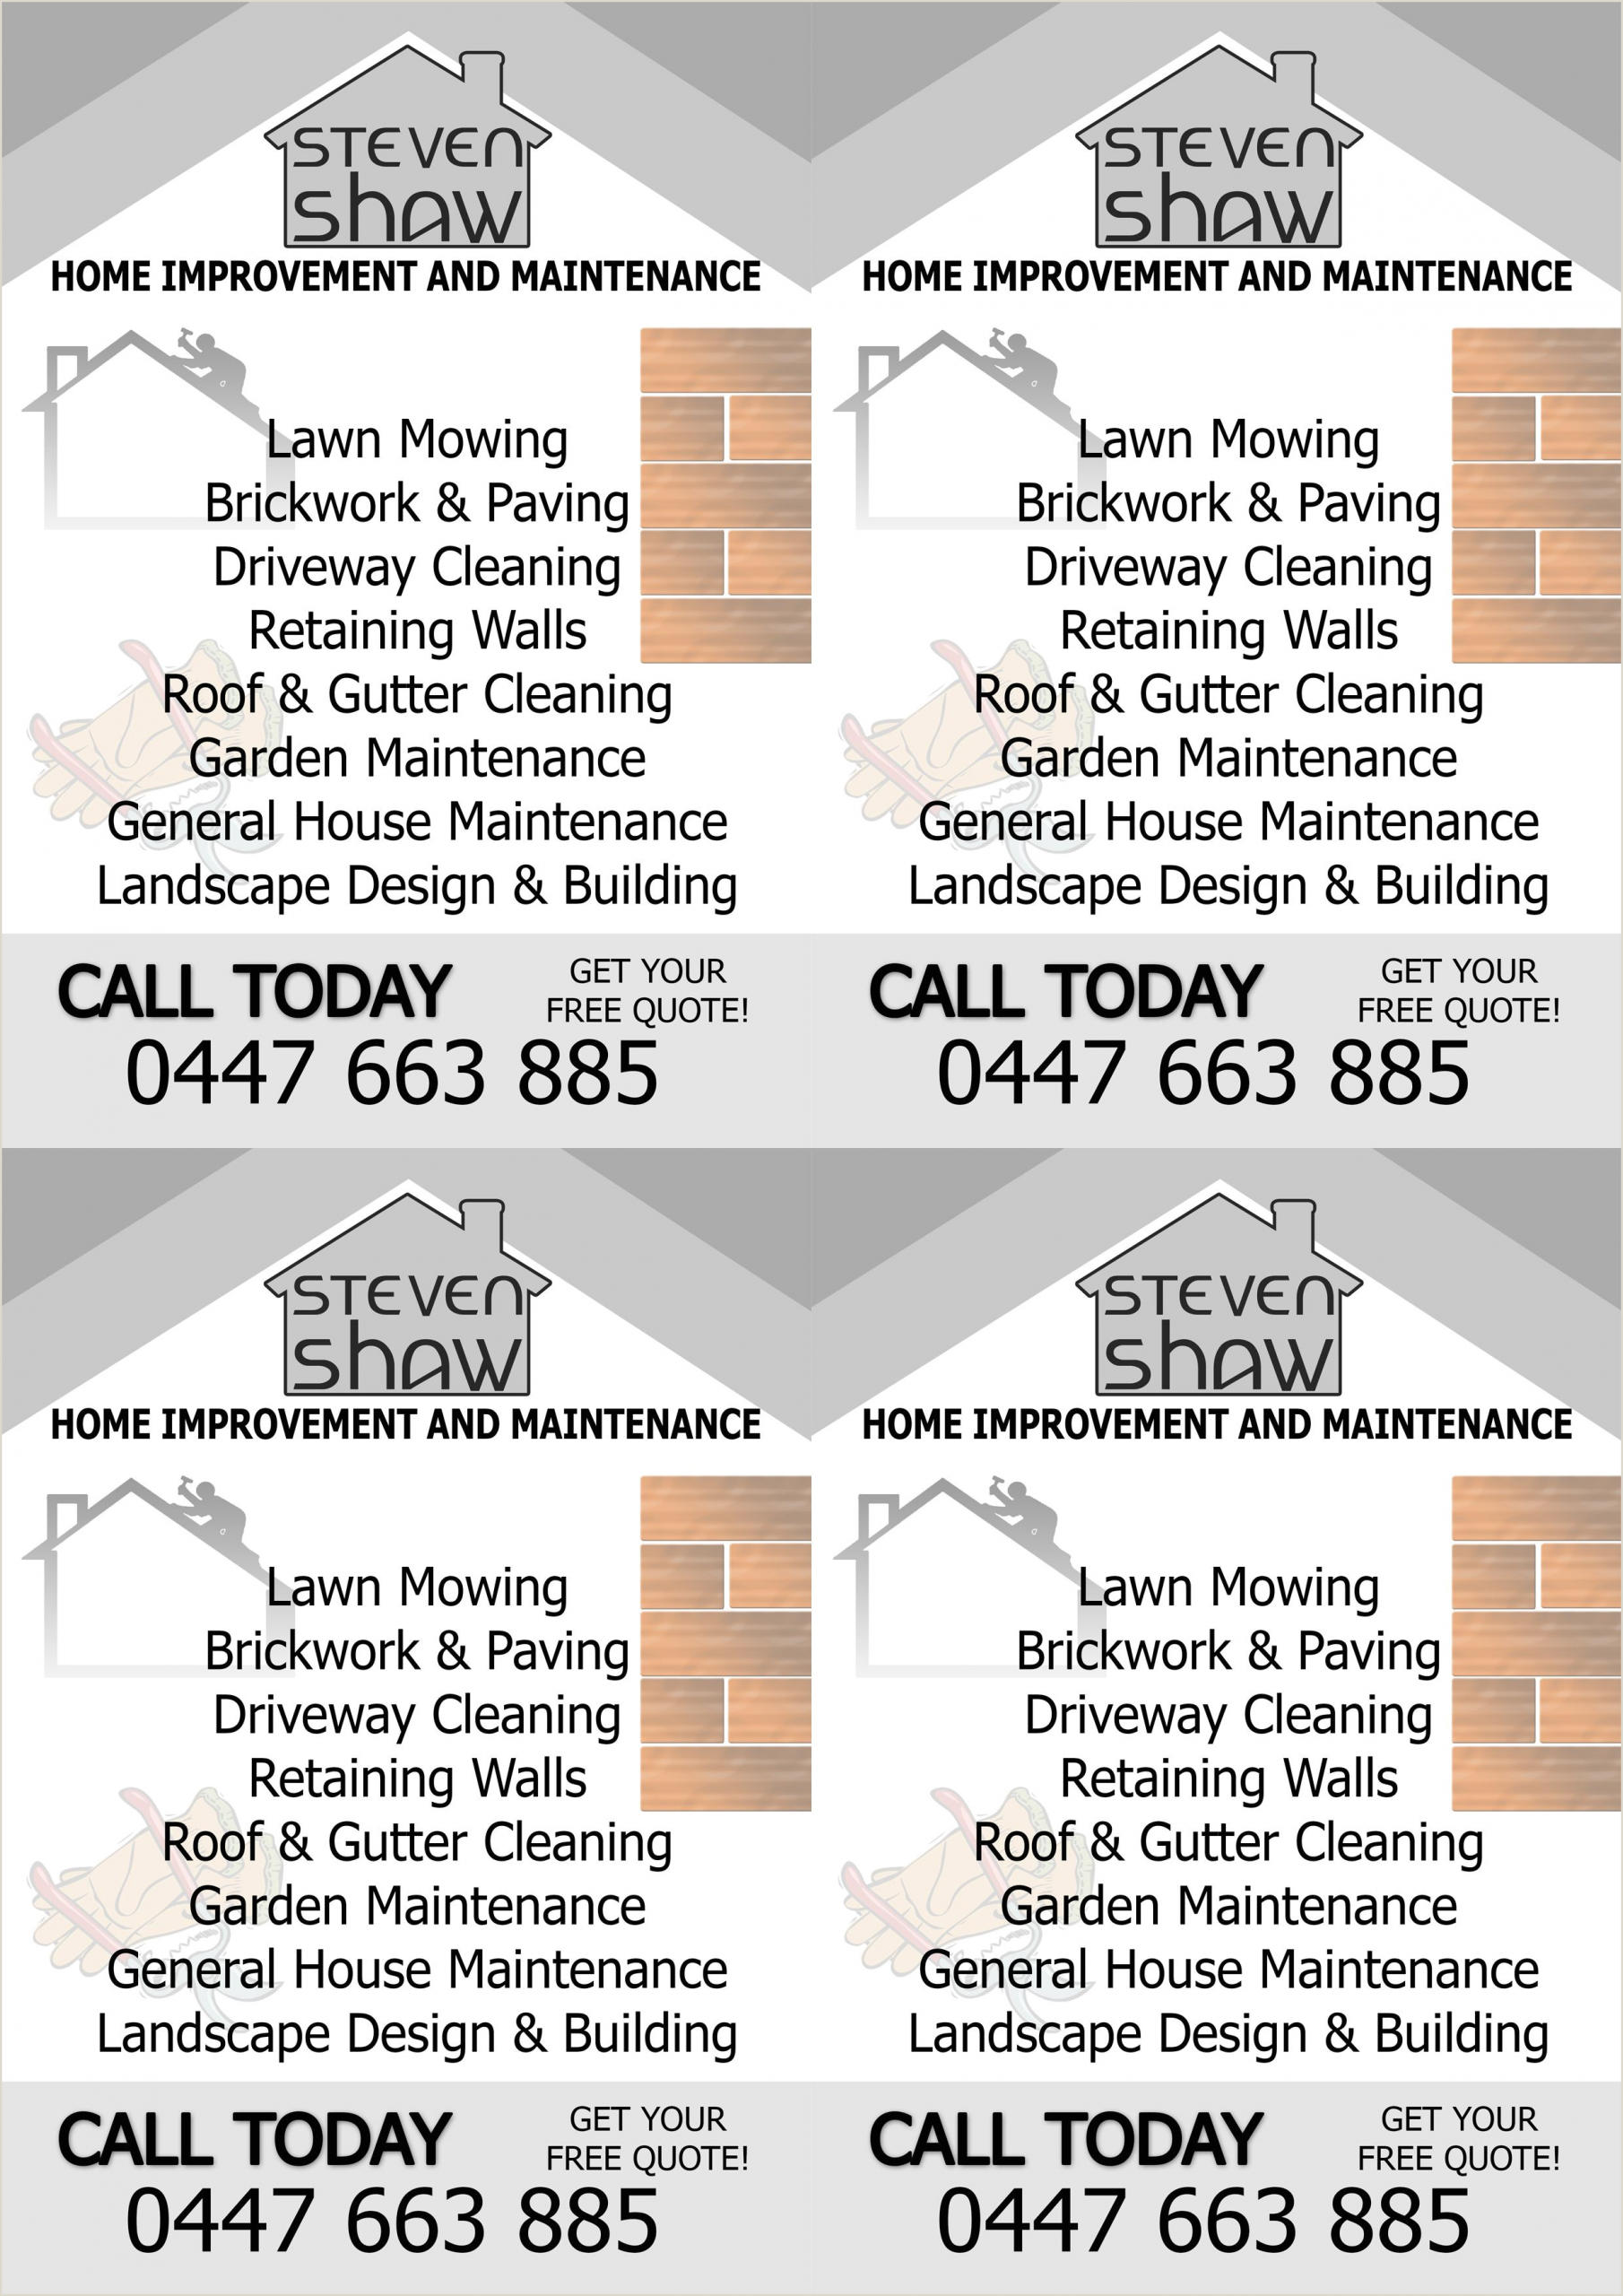 Home Improvement Best Business Cards Home Improvement Business Cards Business Card Design